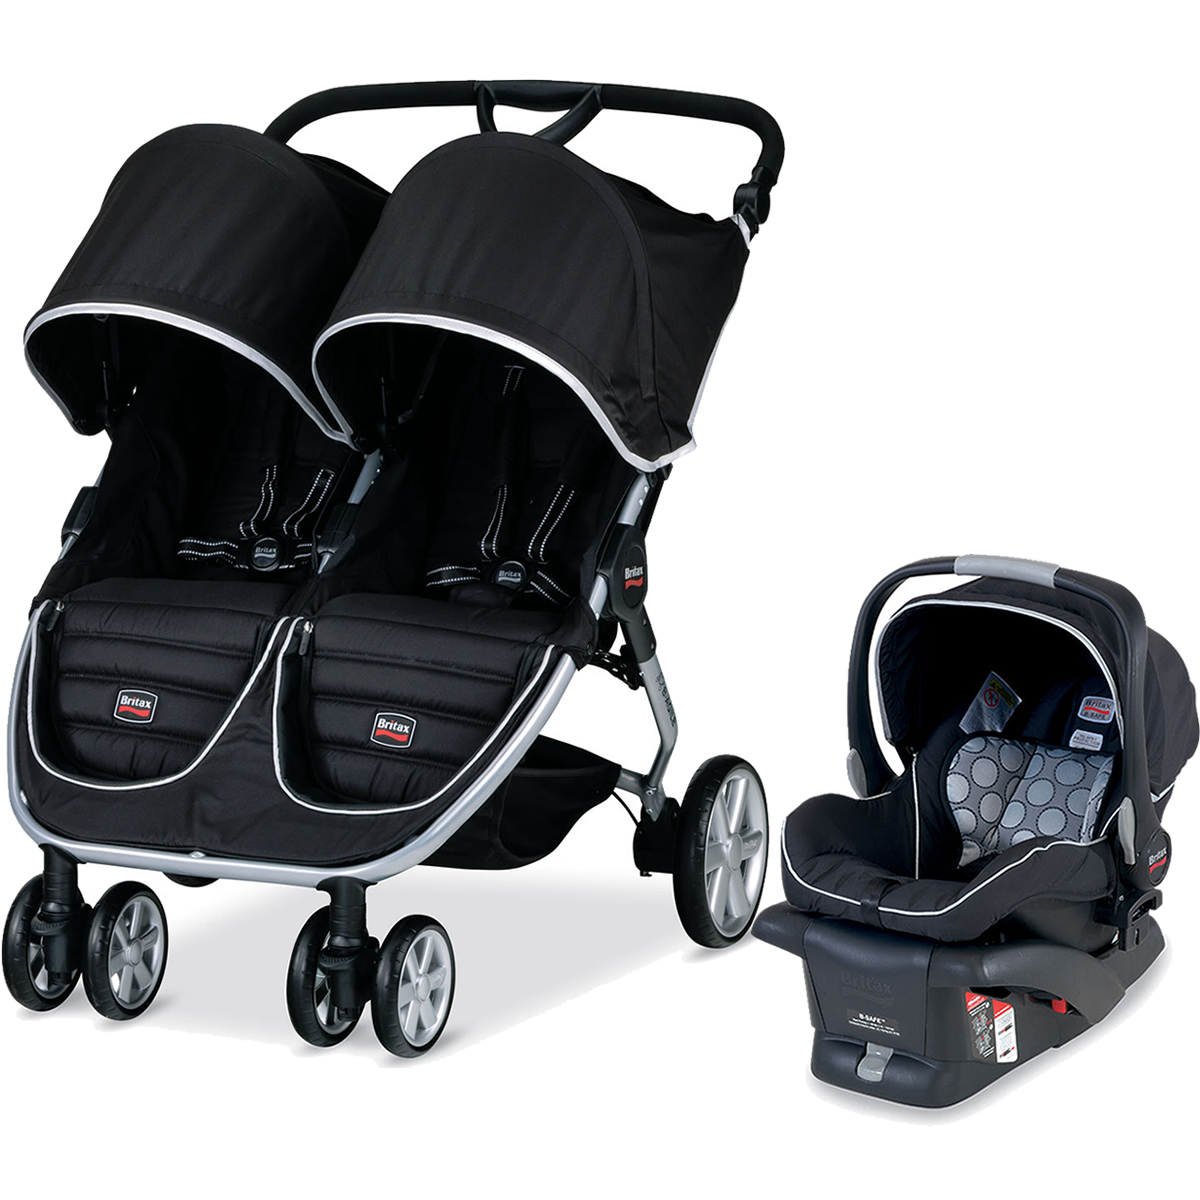 Britax B-Agile Double Stroller Travel System - Black